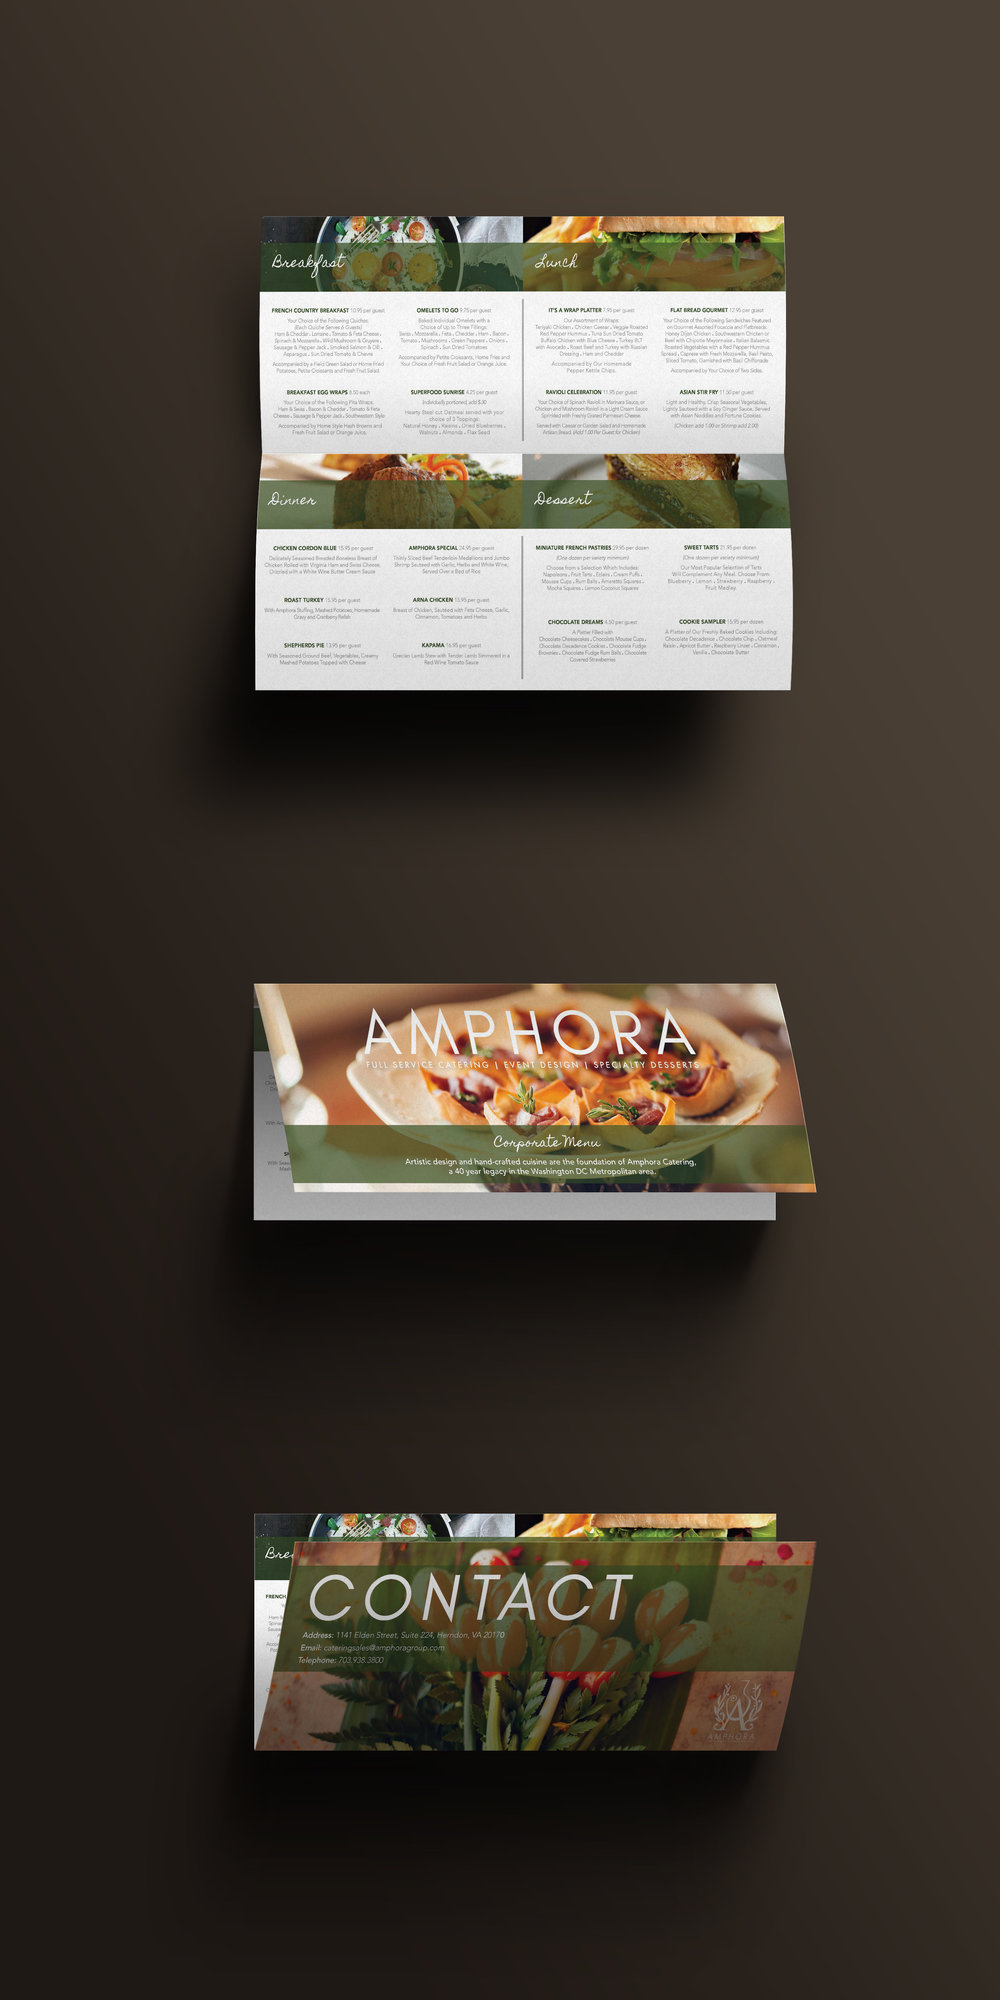 BrittnyHayes-CorporateCateringMenu-Mockup.jpg